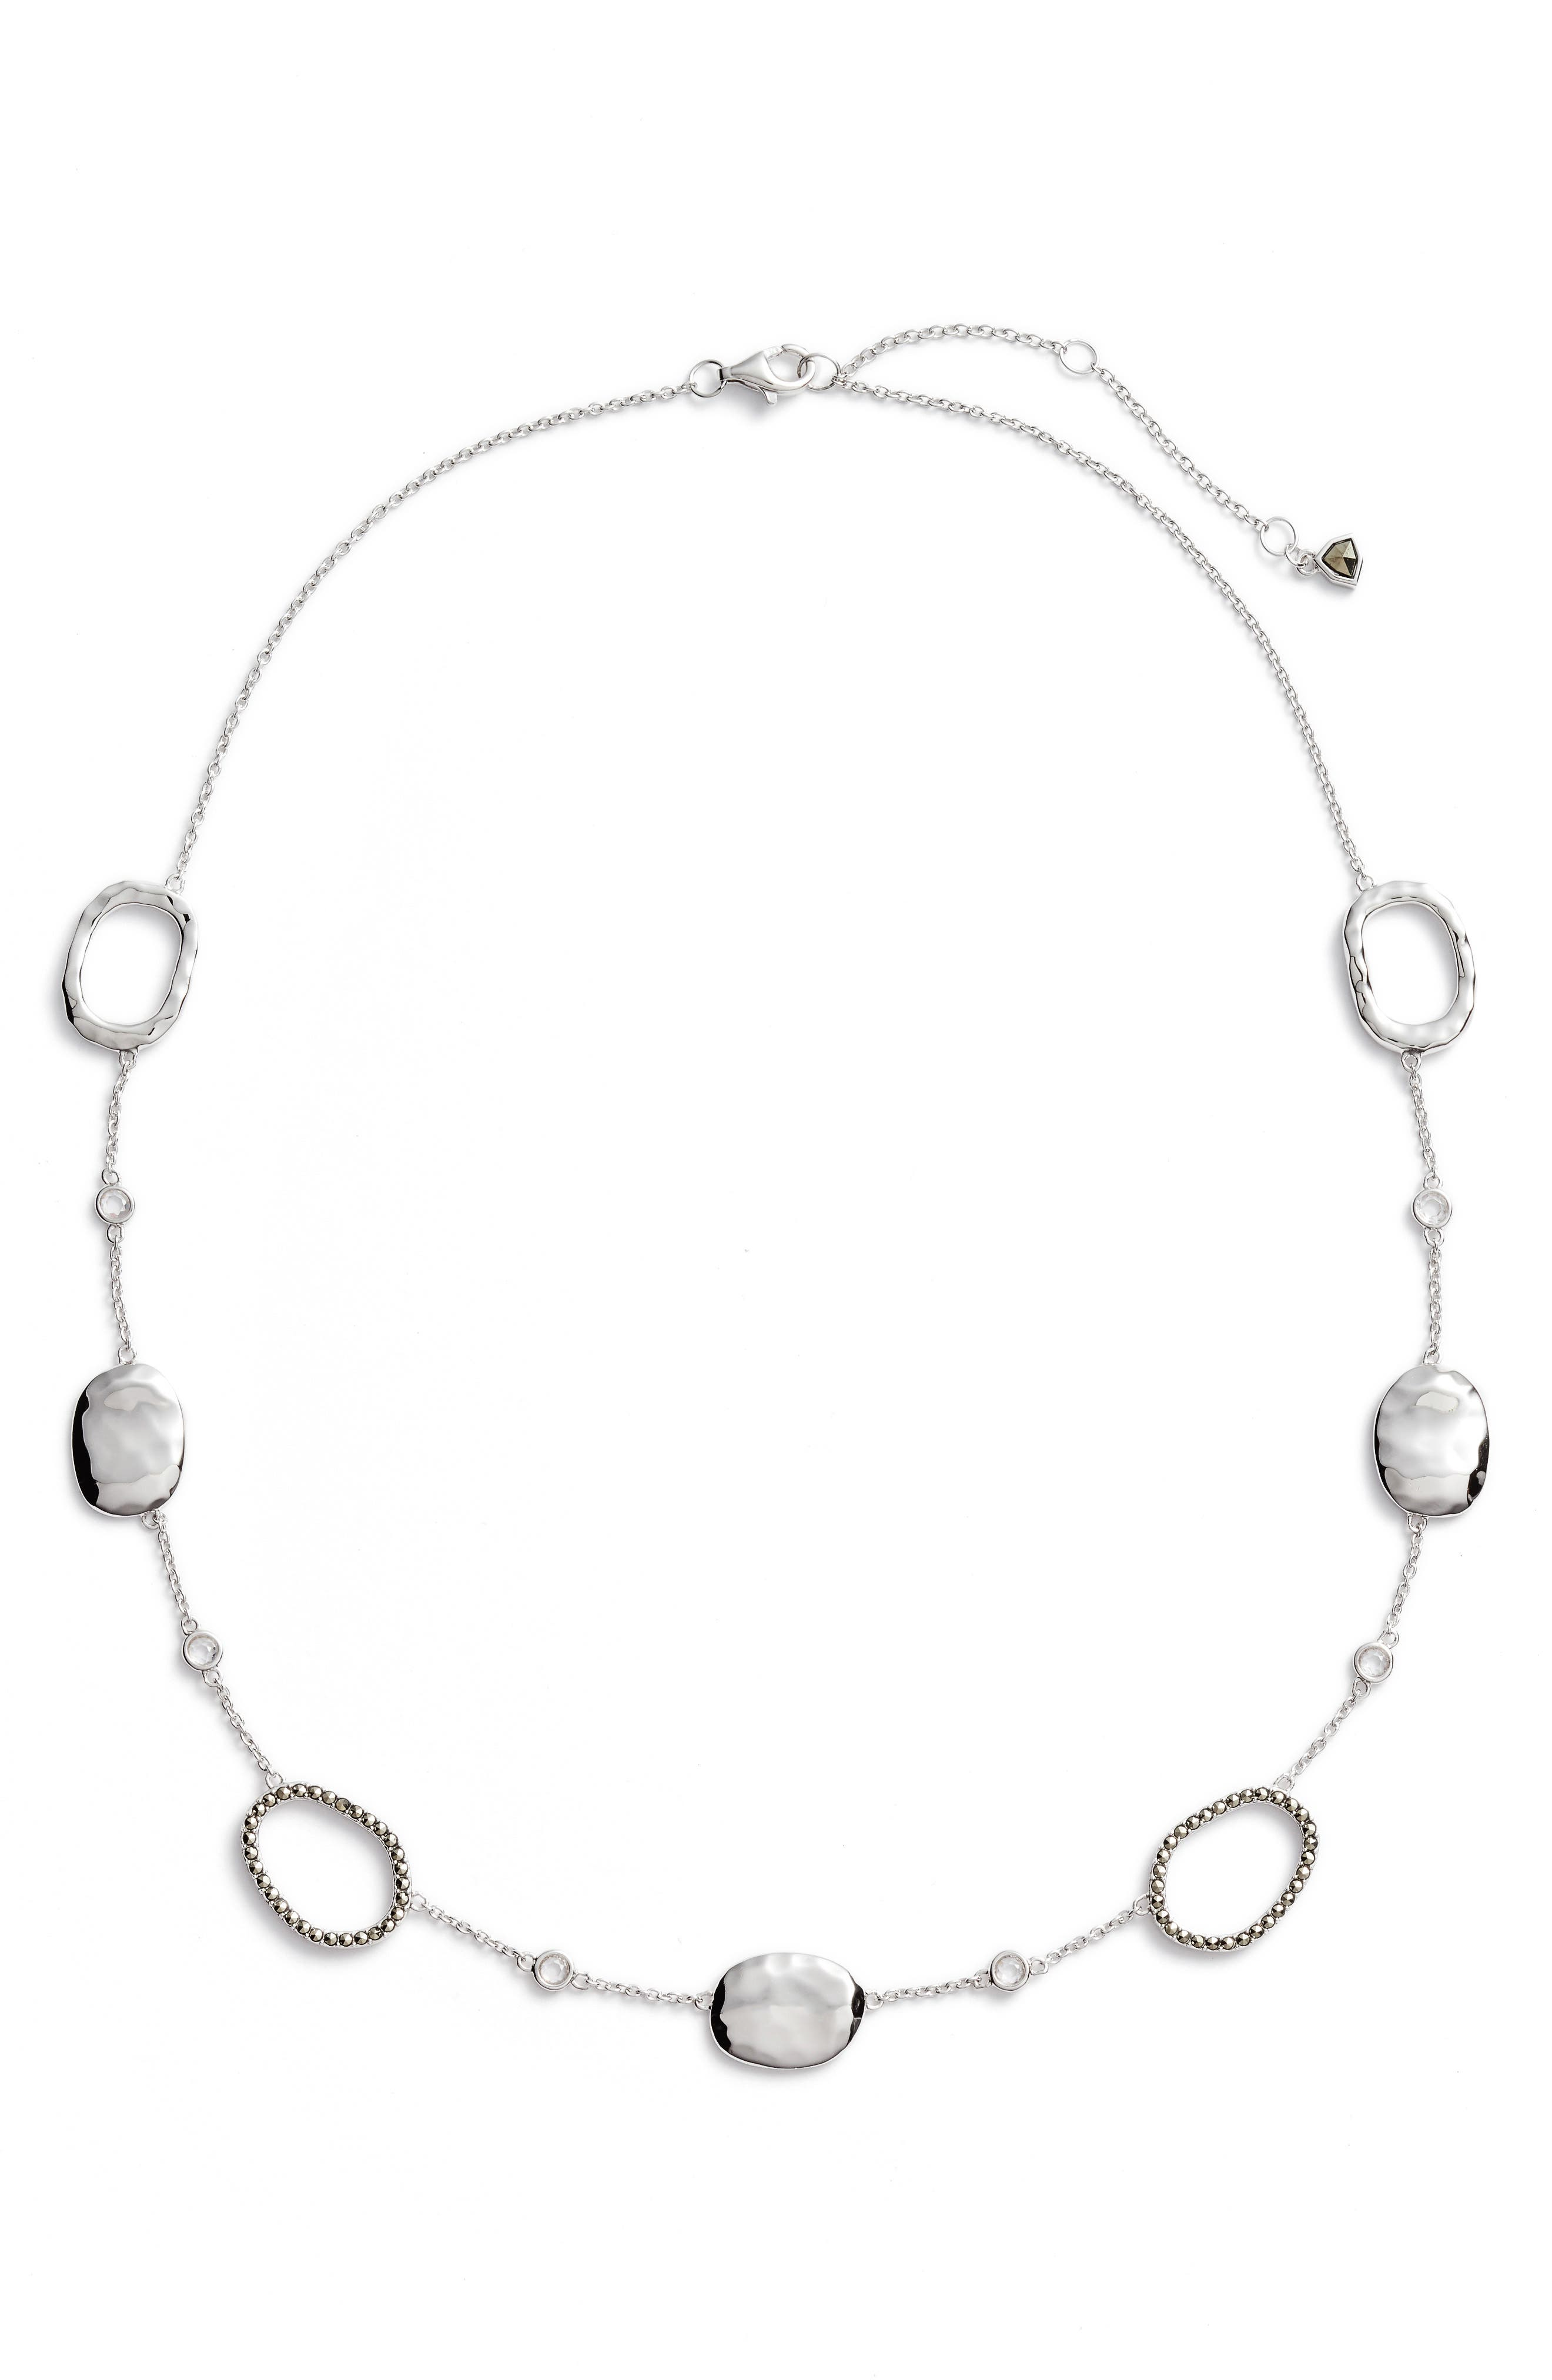 Alternate Image 1 Selected - Judith Jack Crystal Collar Necklace